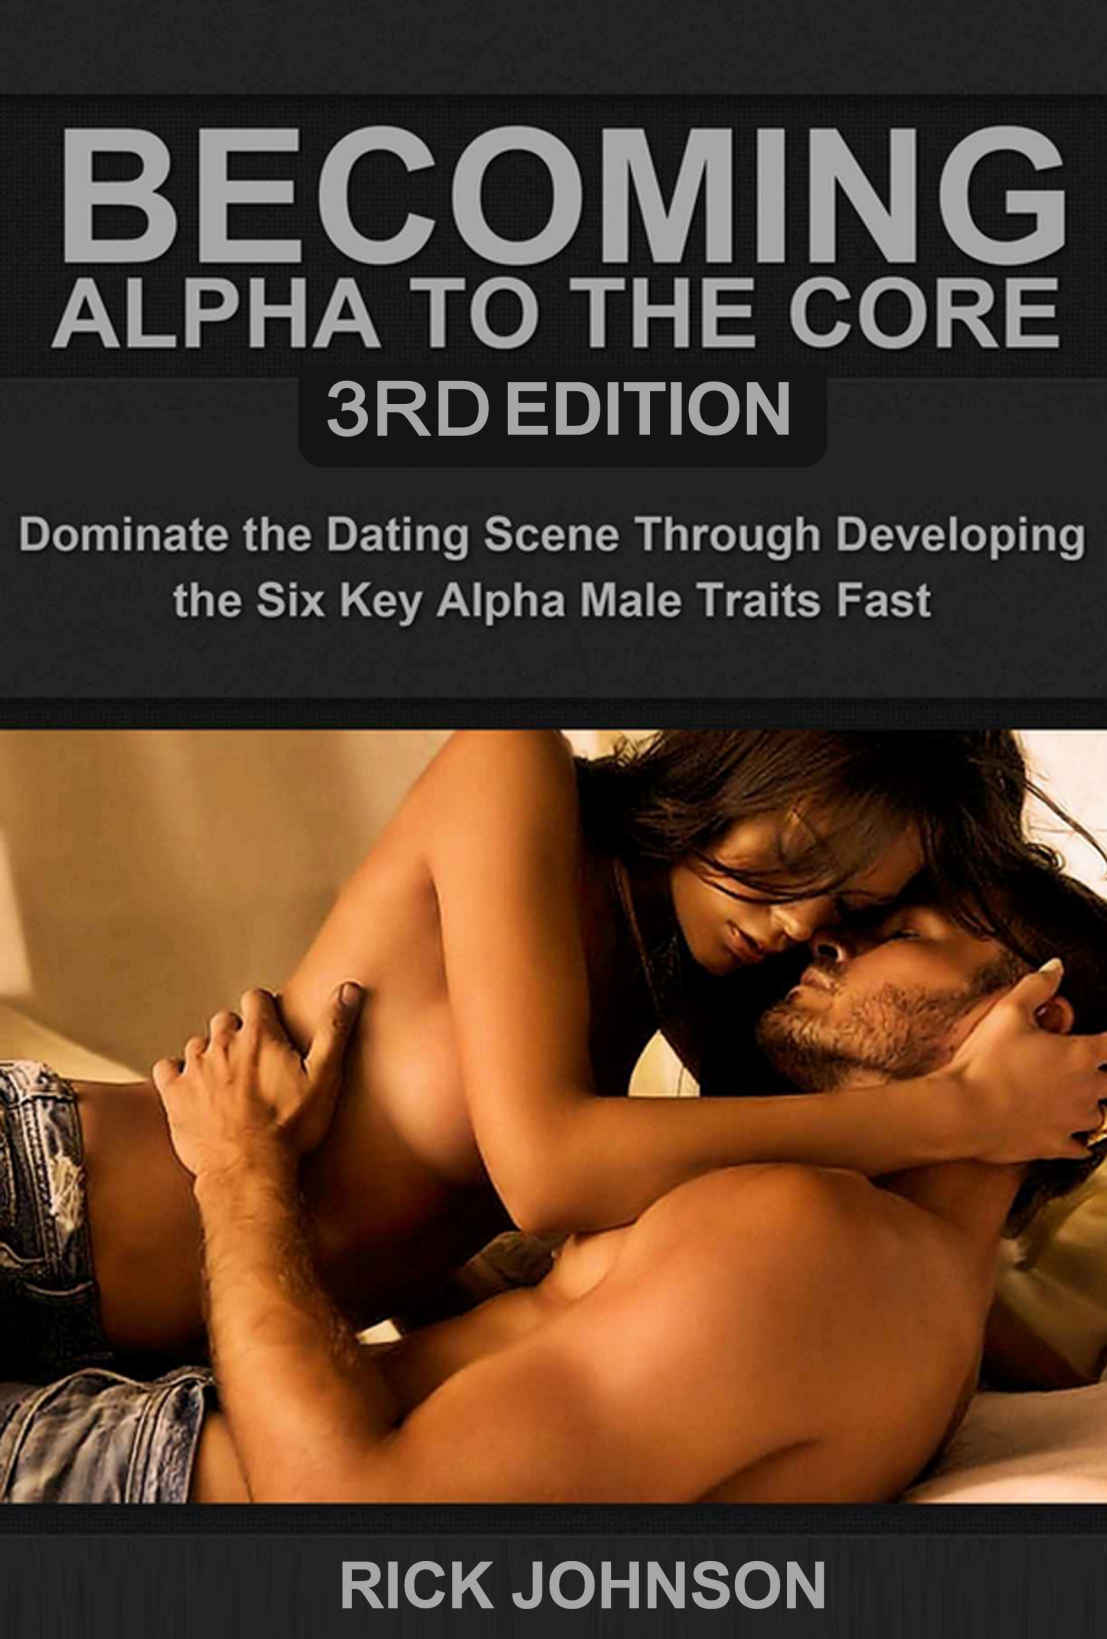 Dating:Becoming Alpha To The Core 3rd Edition - Dominate the Dating Scene Through Developing the Si 1st Edition Pdf Free Download